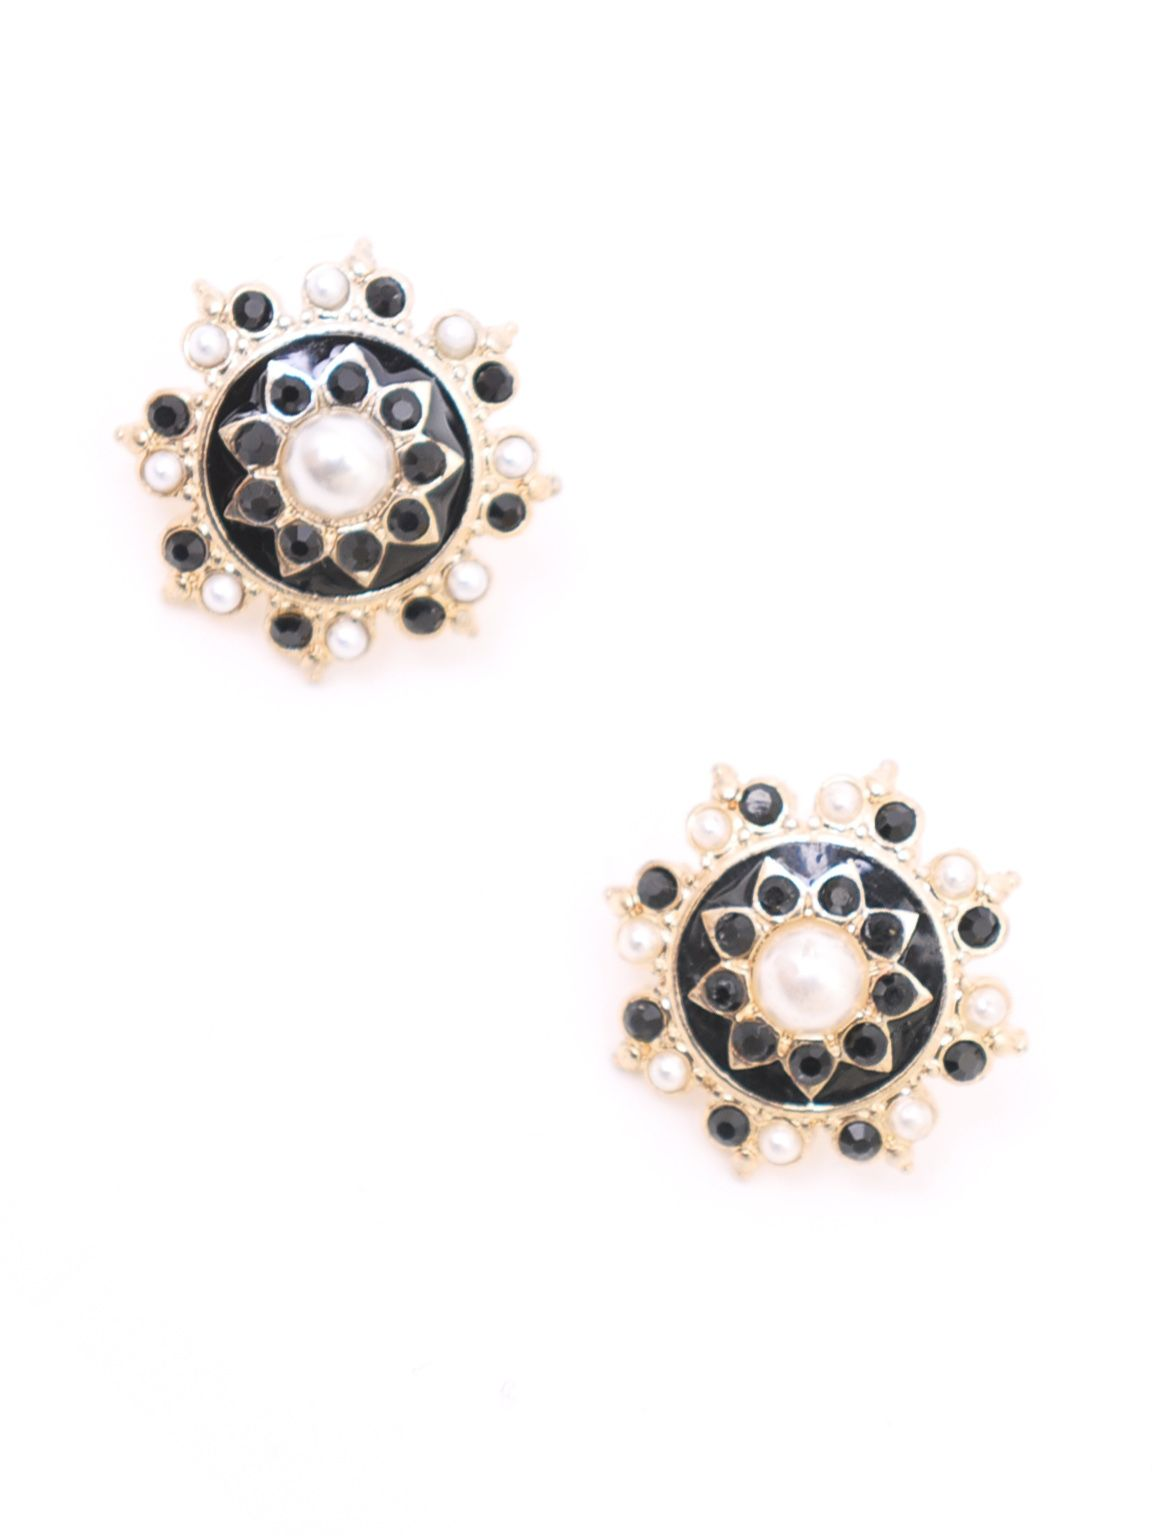 Jet and pearl star earrings